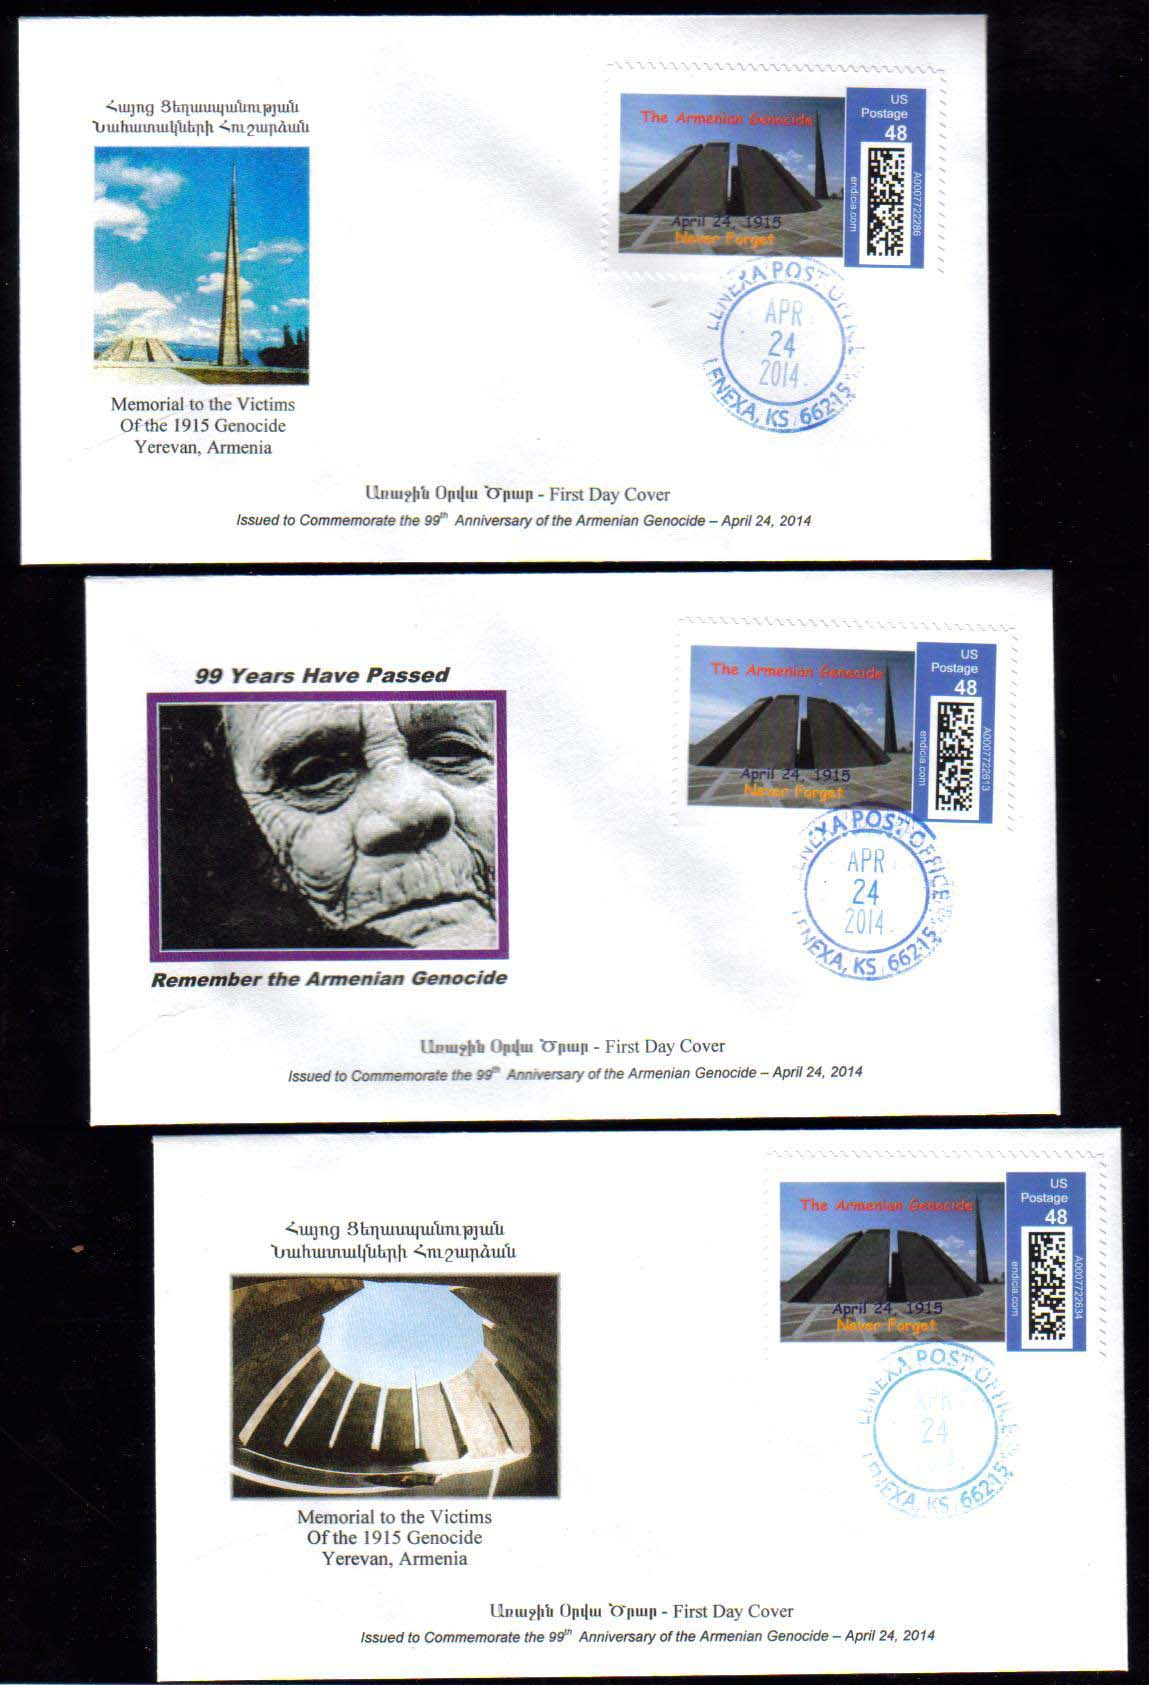 <font 203>Set of 3 First Day Covers, cancelled April 24, 2014.  A total of 72 sets were issued.  4 sets available. <br> <a href=&quot;/images/Armenia-Genocide-2014-FDC-Set.jpg&quot;>   <font color=green><b>View the image</b></a></font>